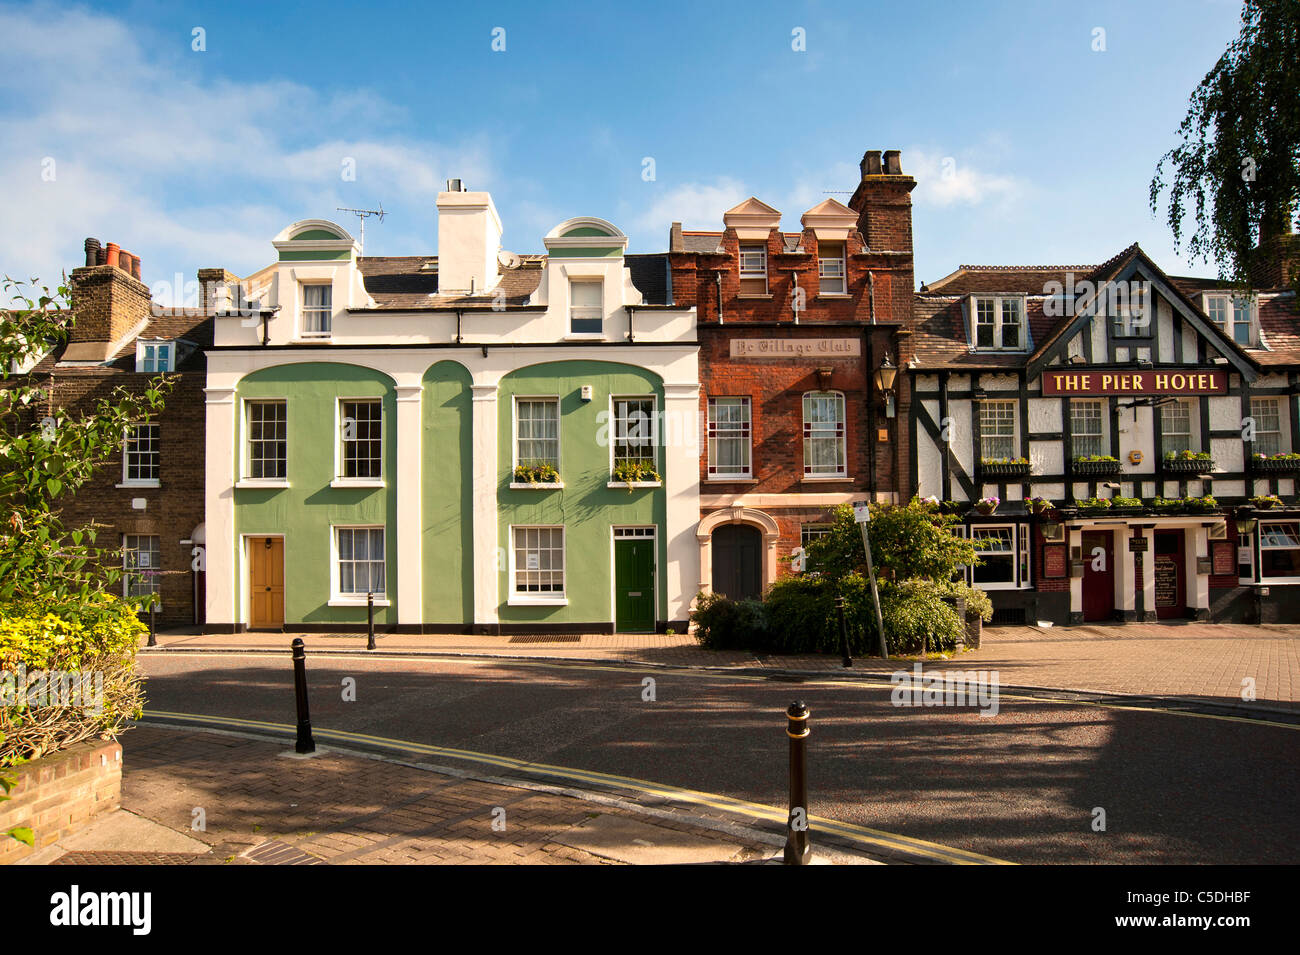 Buildings along the High Street in Greenhithe, Kent.  Including the Pier Hotel Ye Village Club - Stock Image